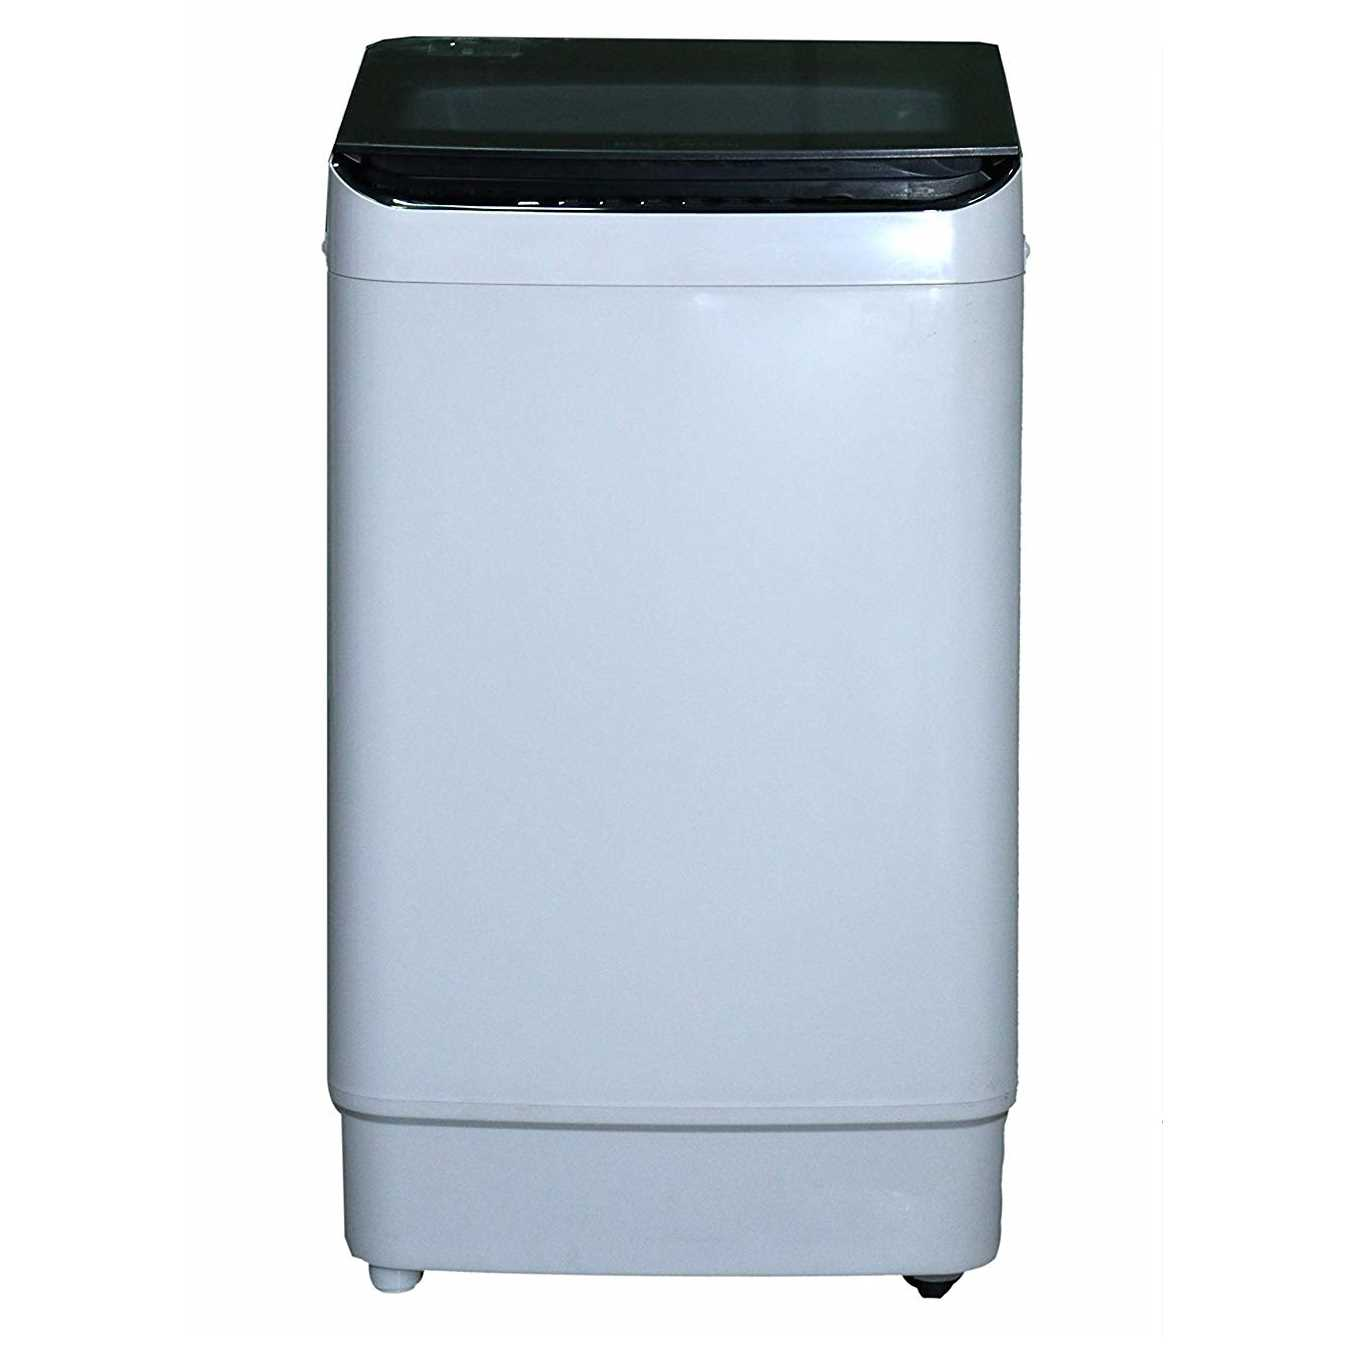 Haikawa HIK-XQB70-B778 7 Kg Fully Automatic Top Loading Washing Machine